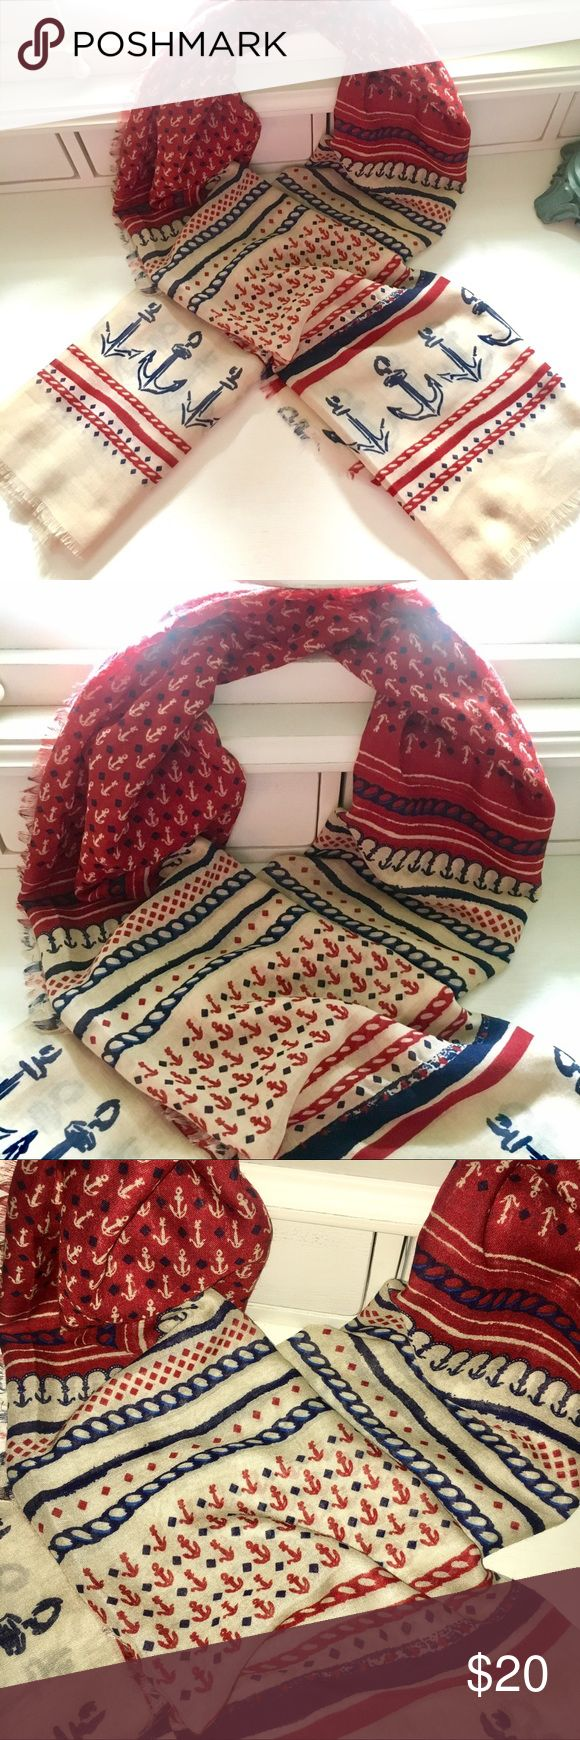 Anchor Scarf Brand new, never been worn! Accessories Scarves & Wraps